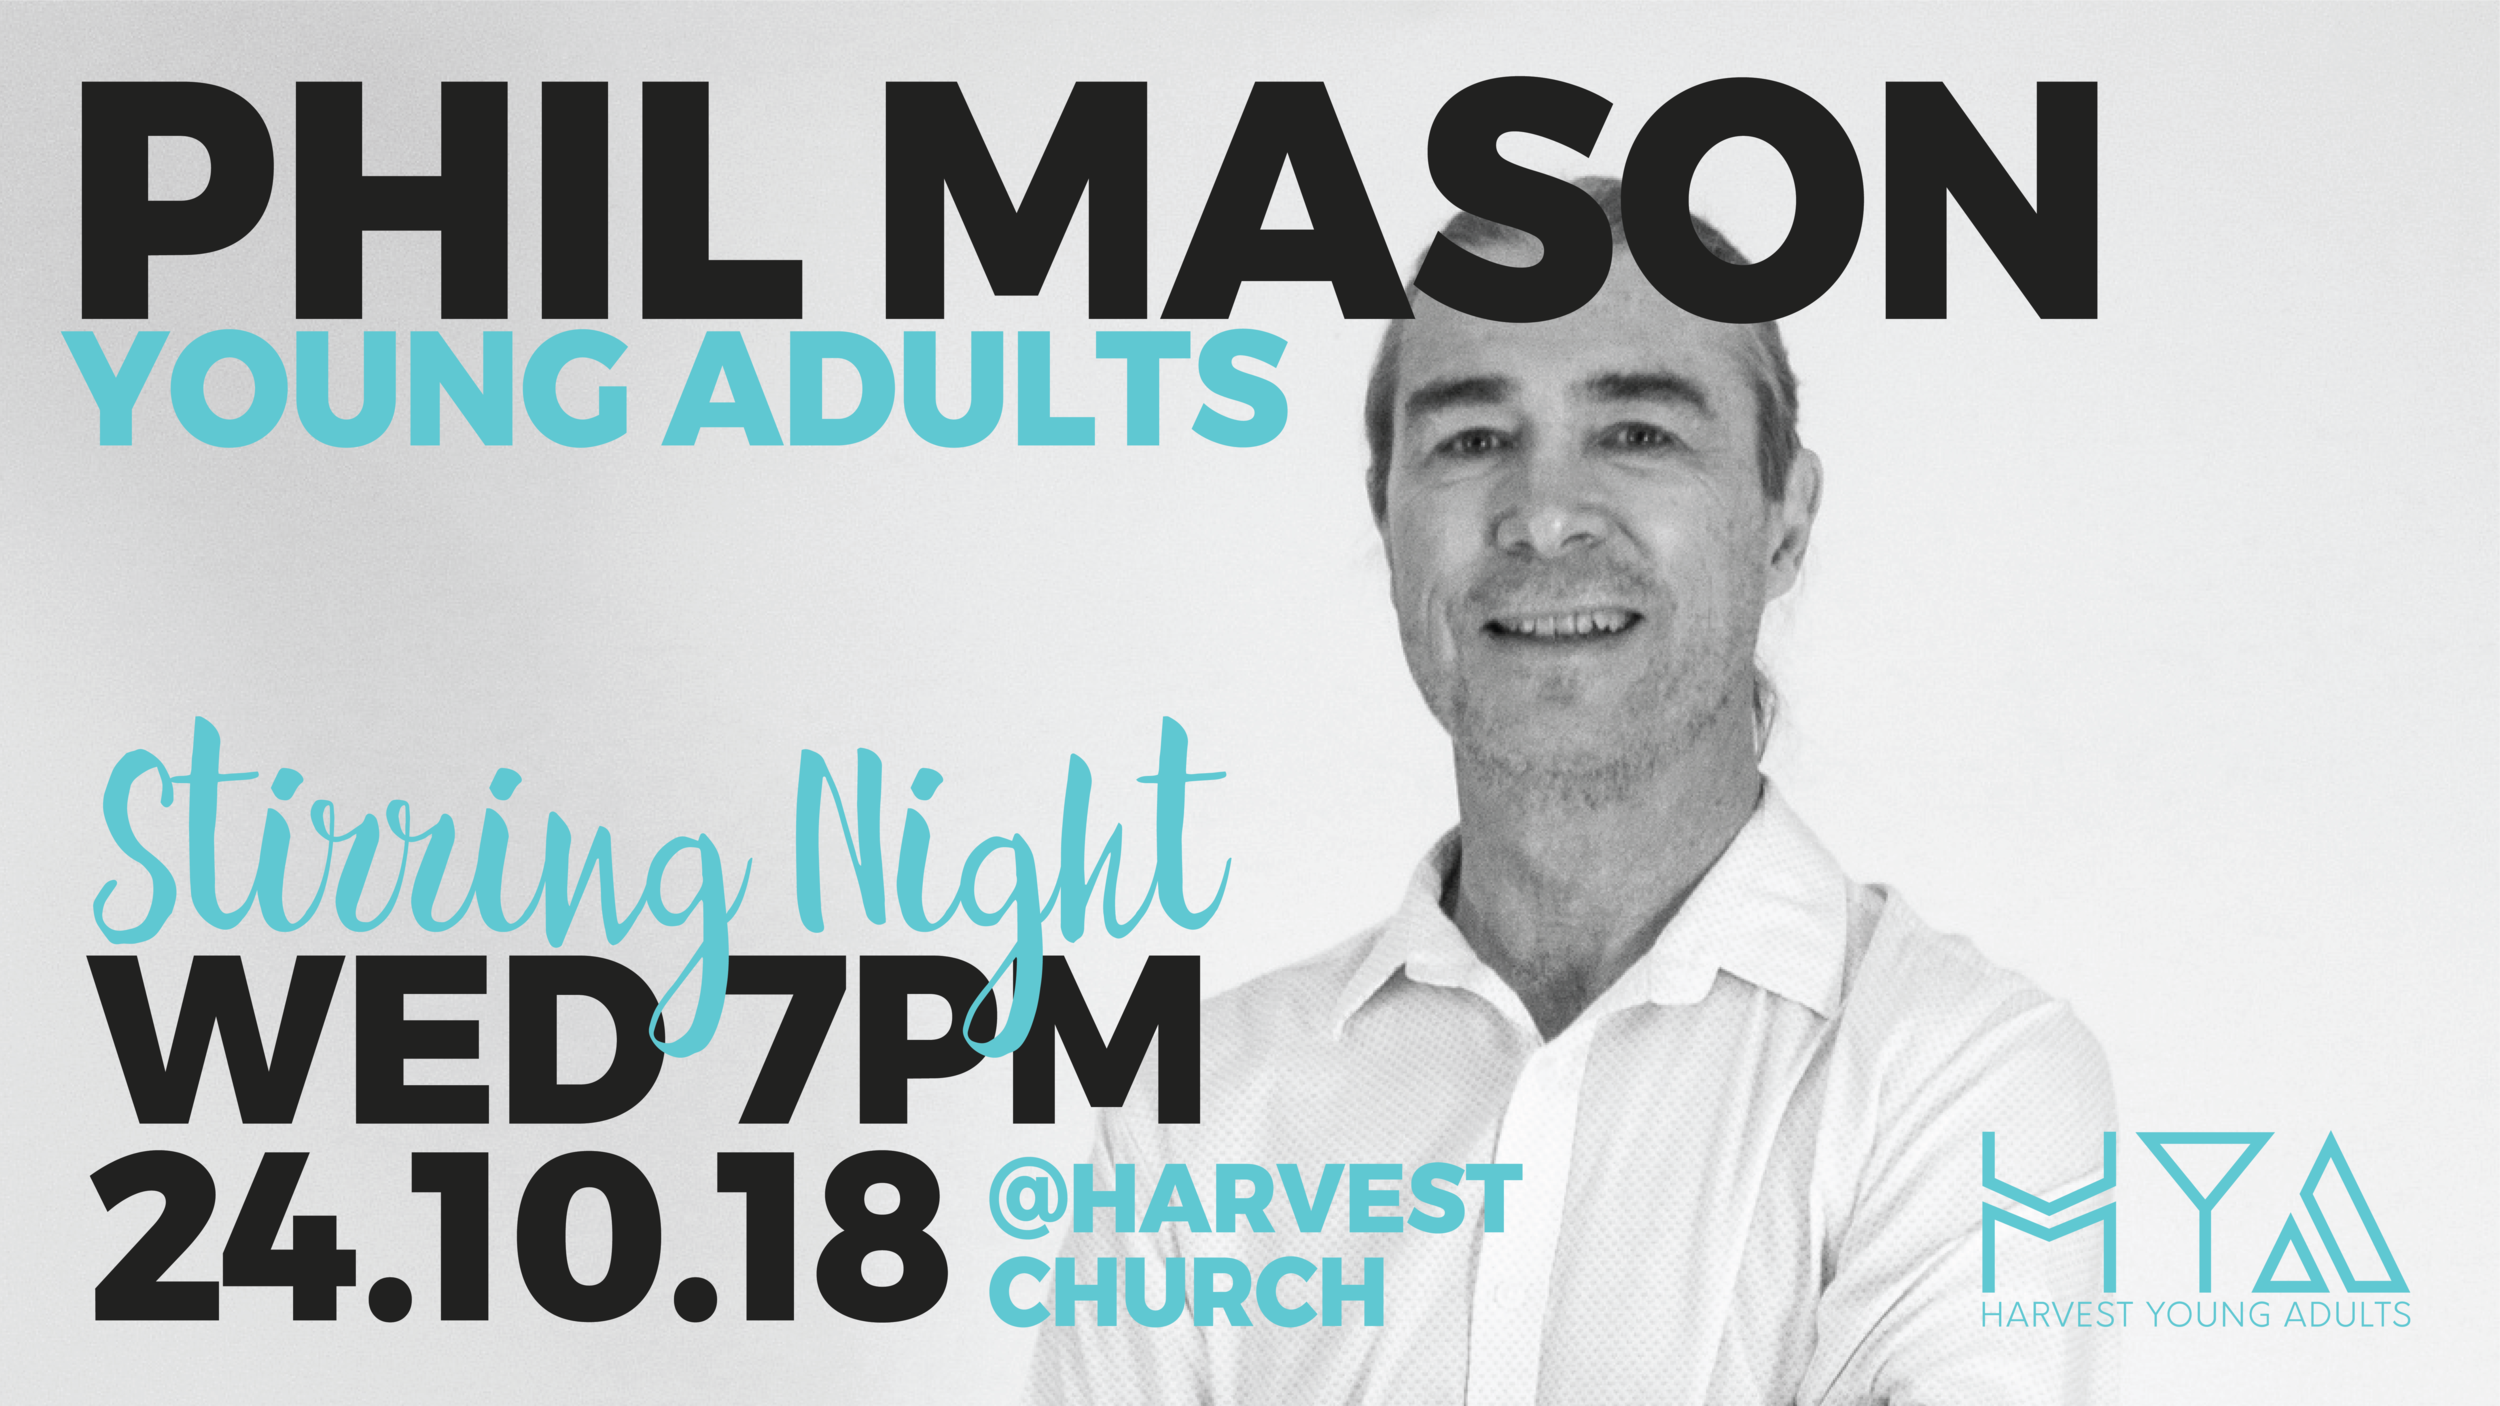 Harvest Young Adults invites Young Adults from all around to join them for a night of seeking God in worship and Phil Mason sharing. It will be an incredible night of exploring God's heart!